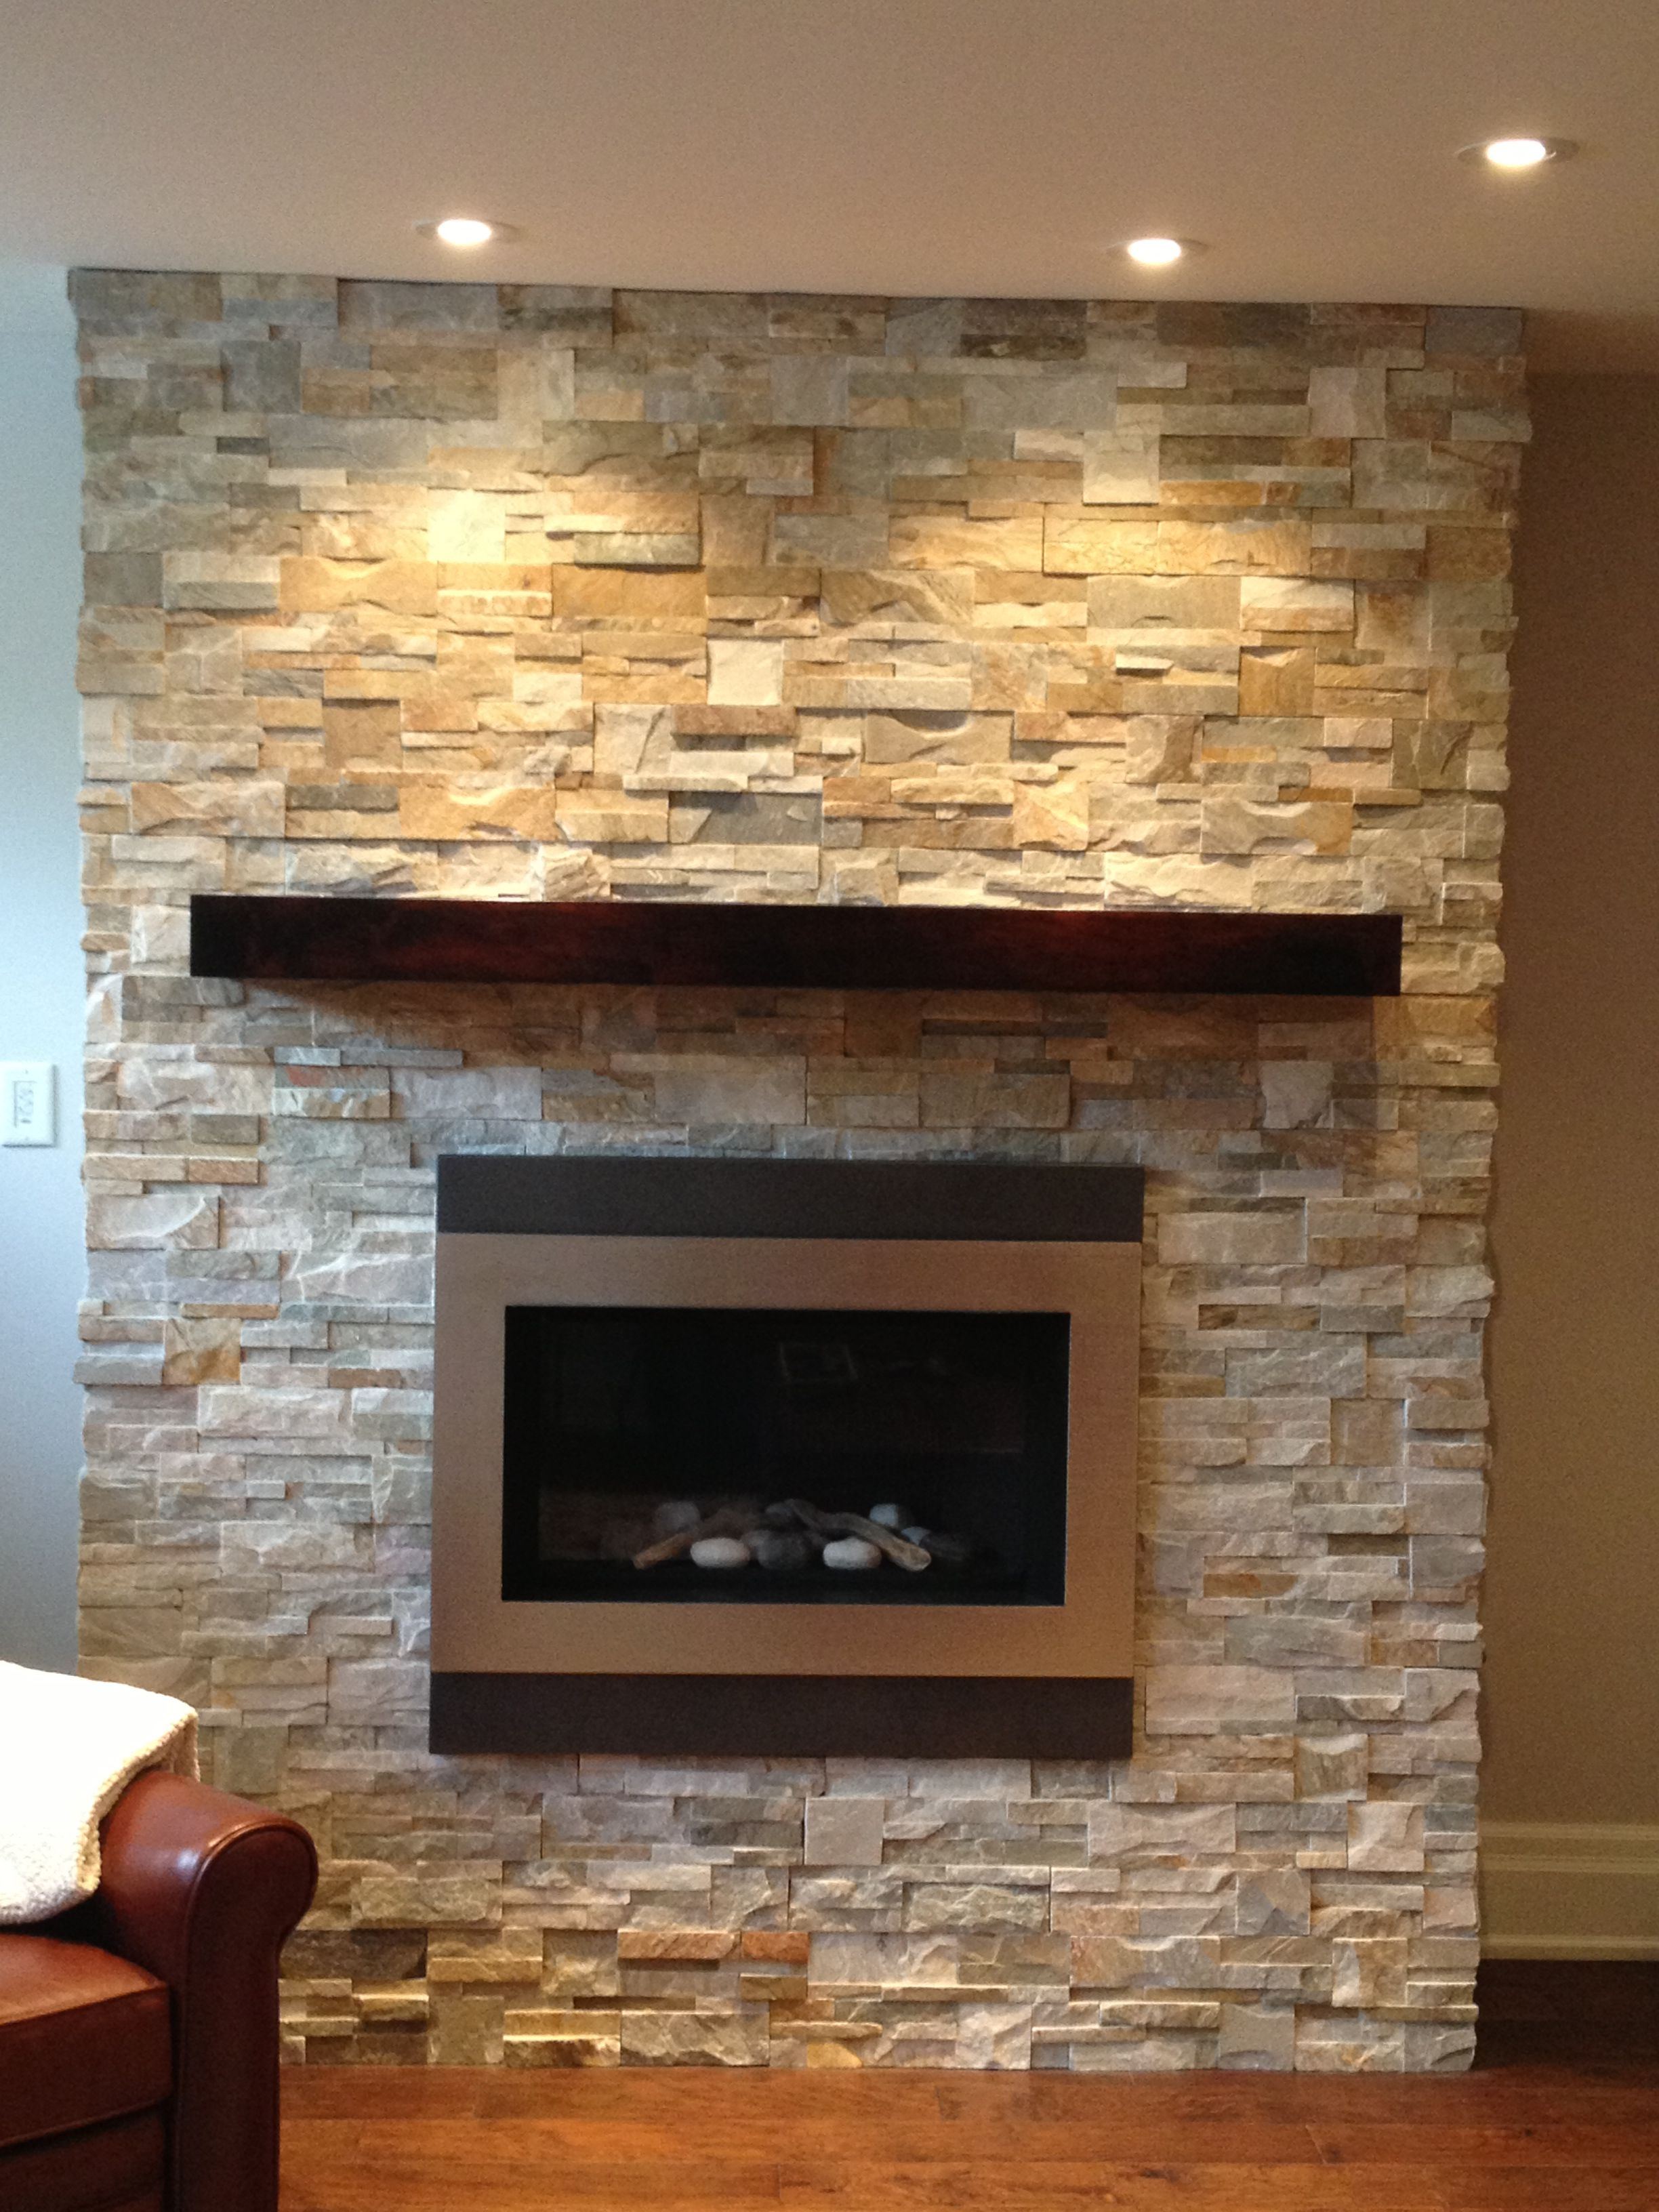 Natural Wood Mantels For Fireplaces Wood Mantel And Natural Ledge Stone On Fireplace | Stone